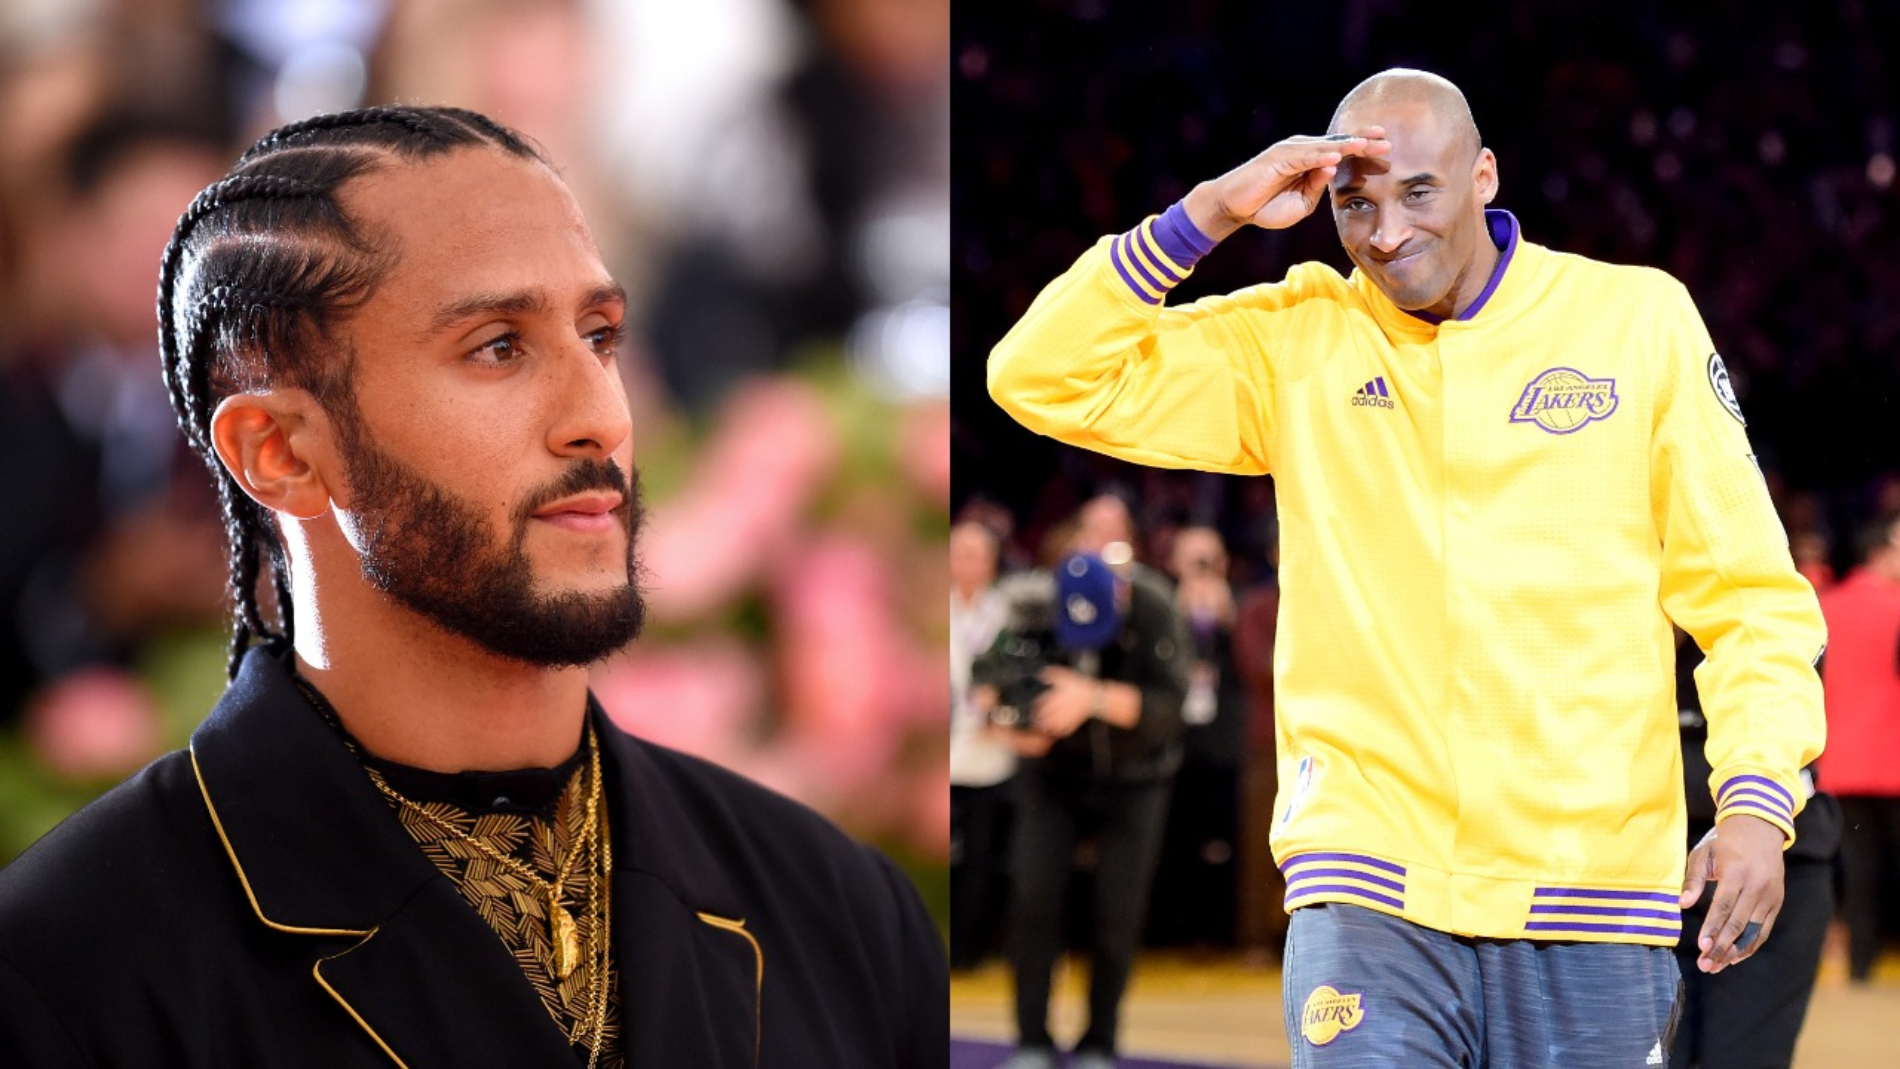 While many people are posting tributes to Kobe Bryant on his birthday, Colin Kaepernick's Know Your Rights Camp also honored Bryant.